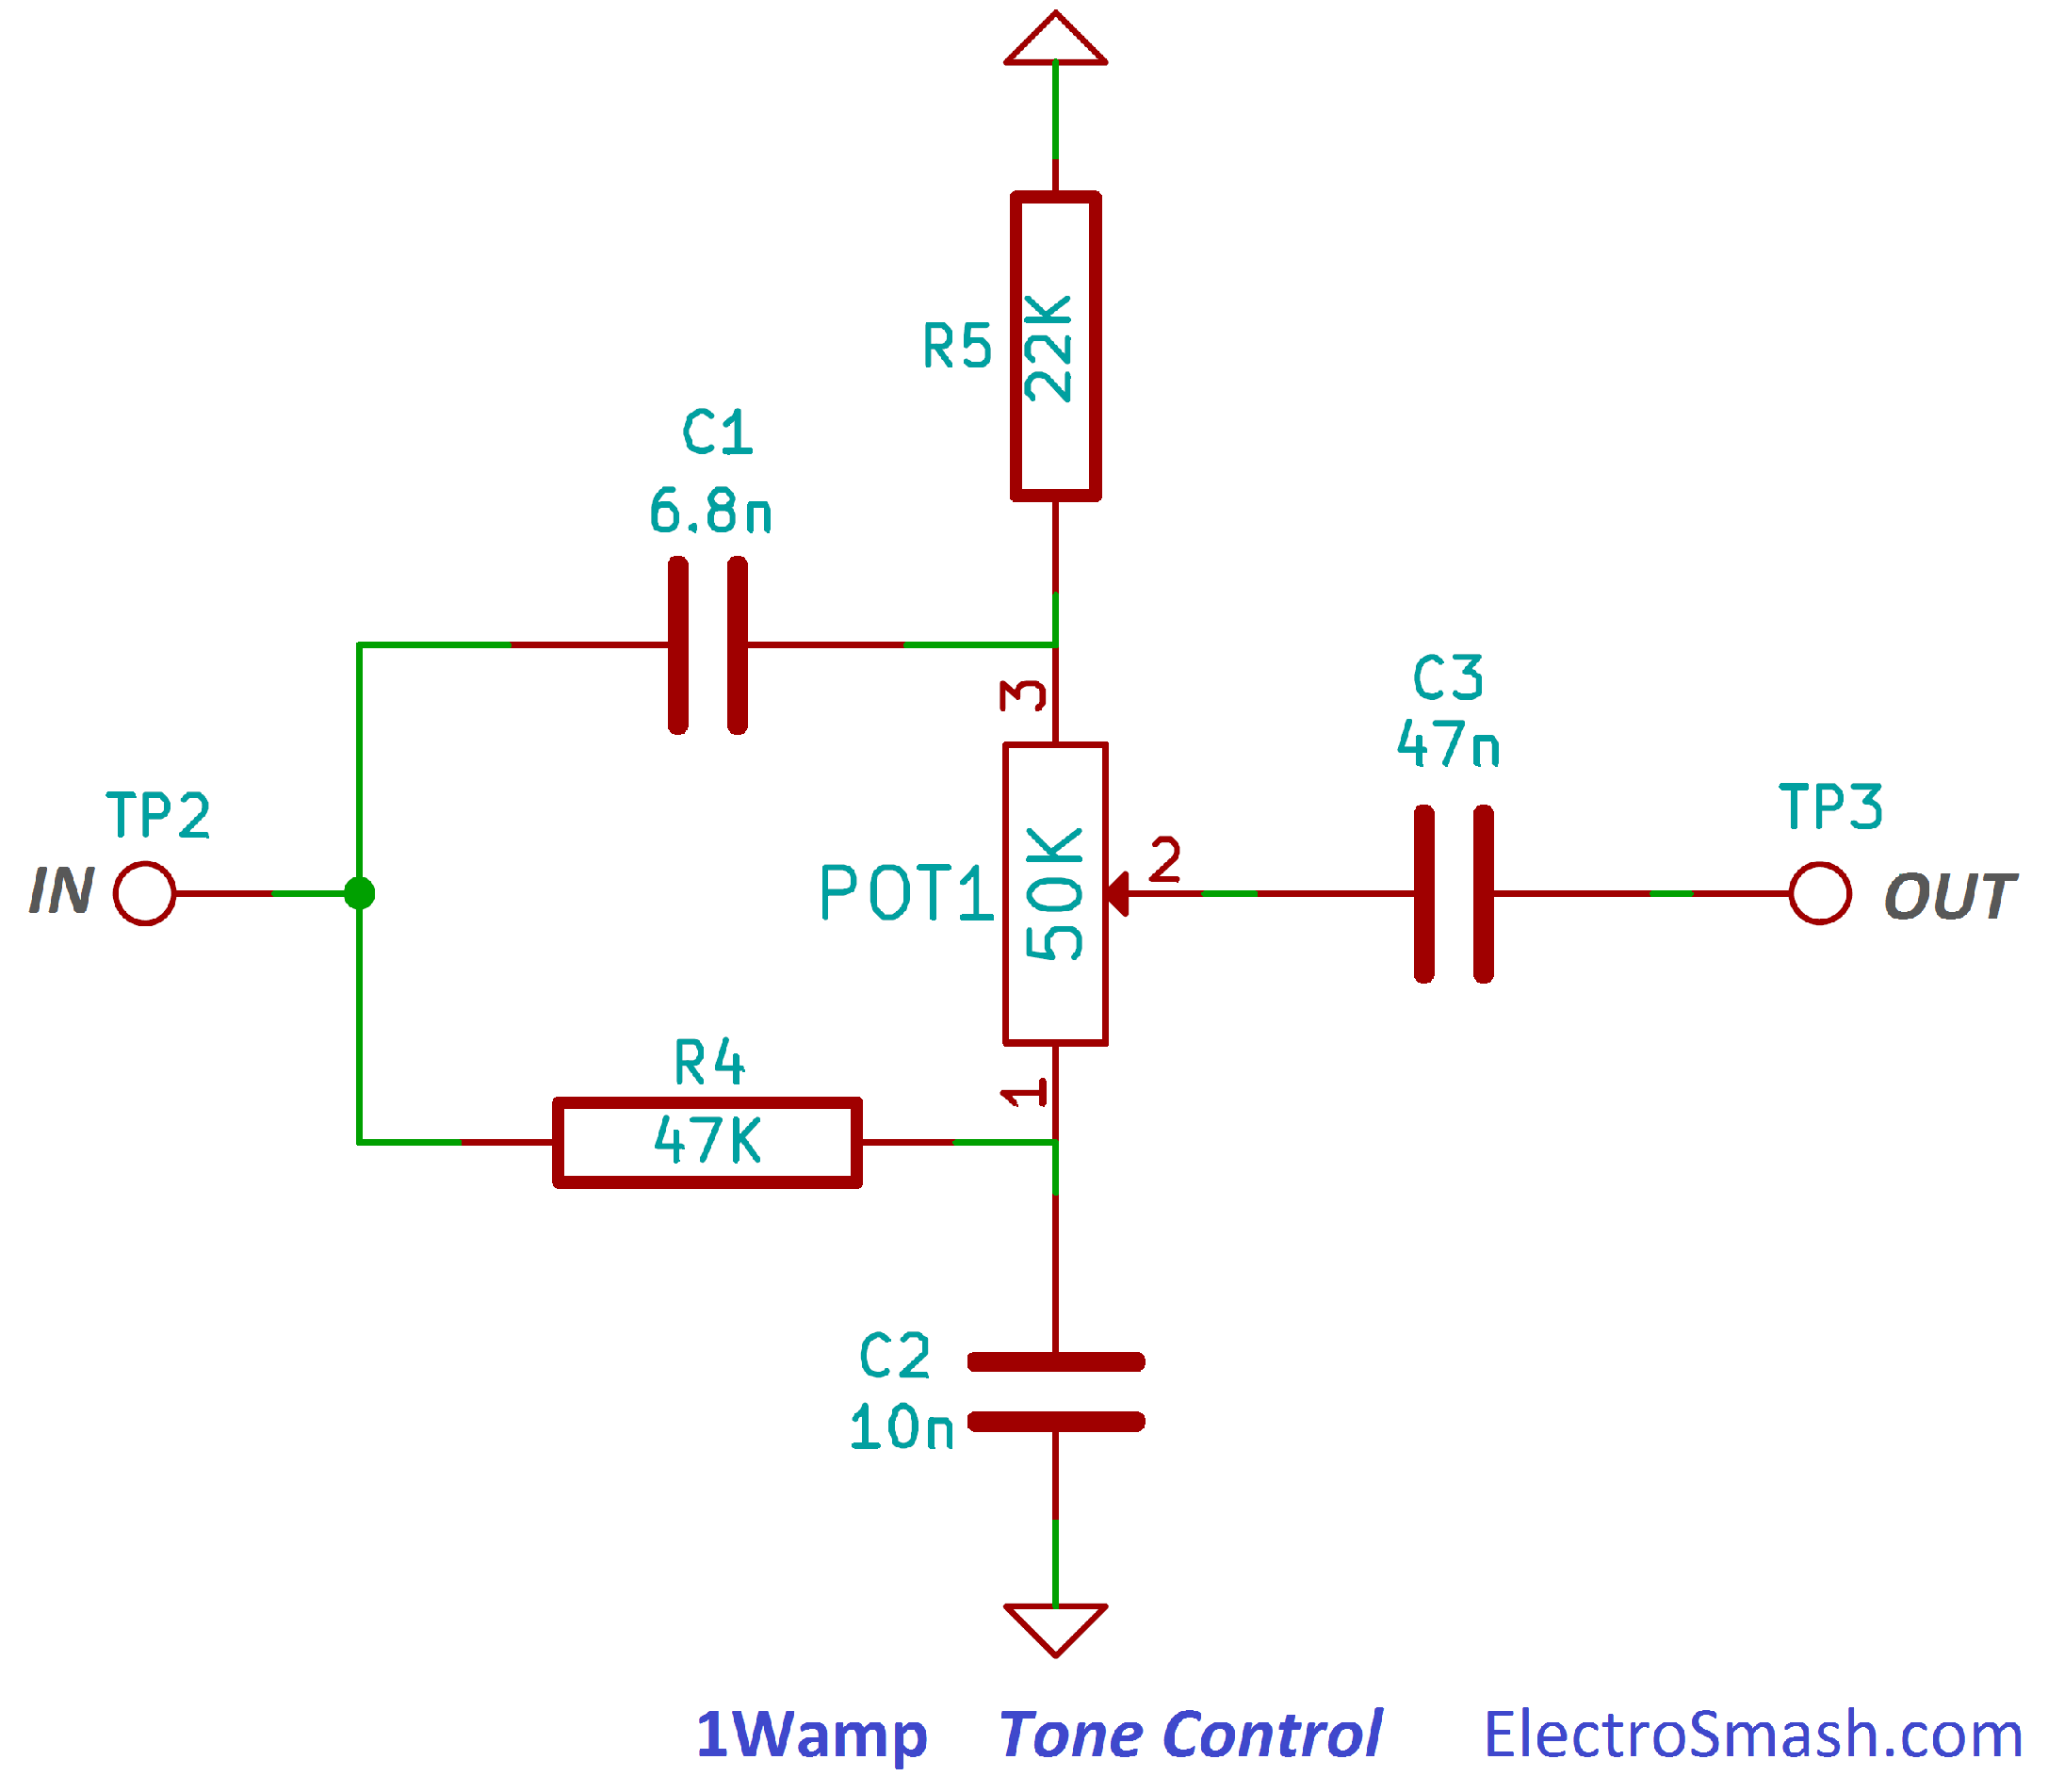 medium resolution of  1wamp tone control resize 665 2c582 wiring diagram 2002 gl1800 gl1200